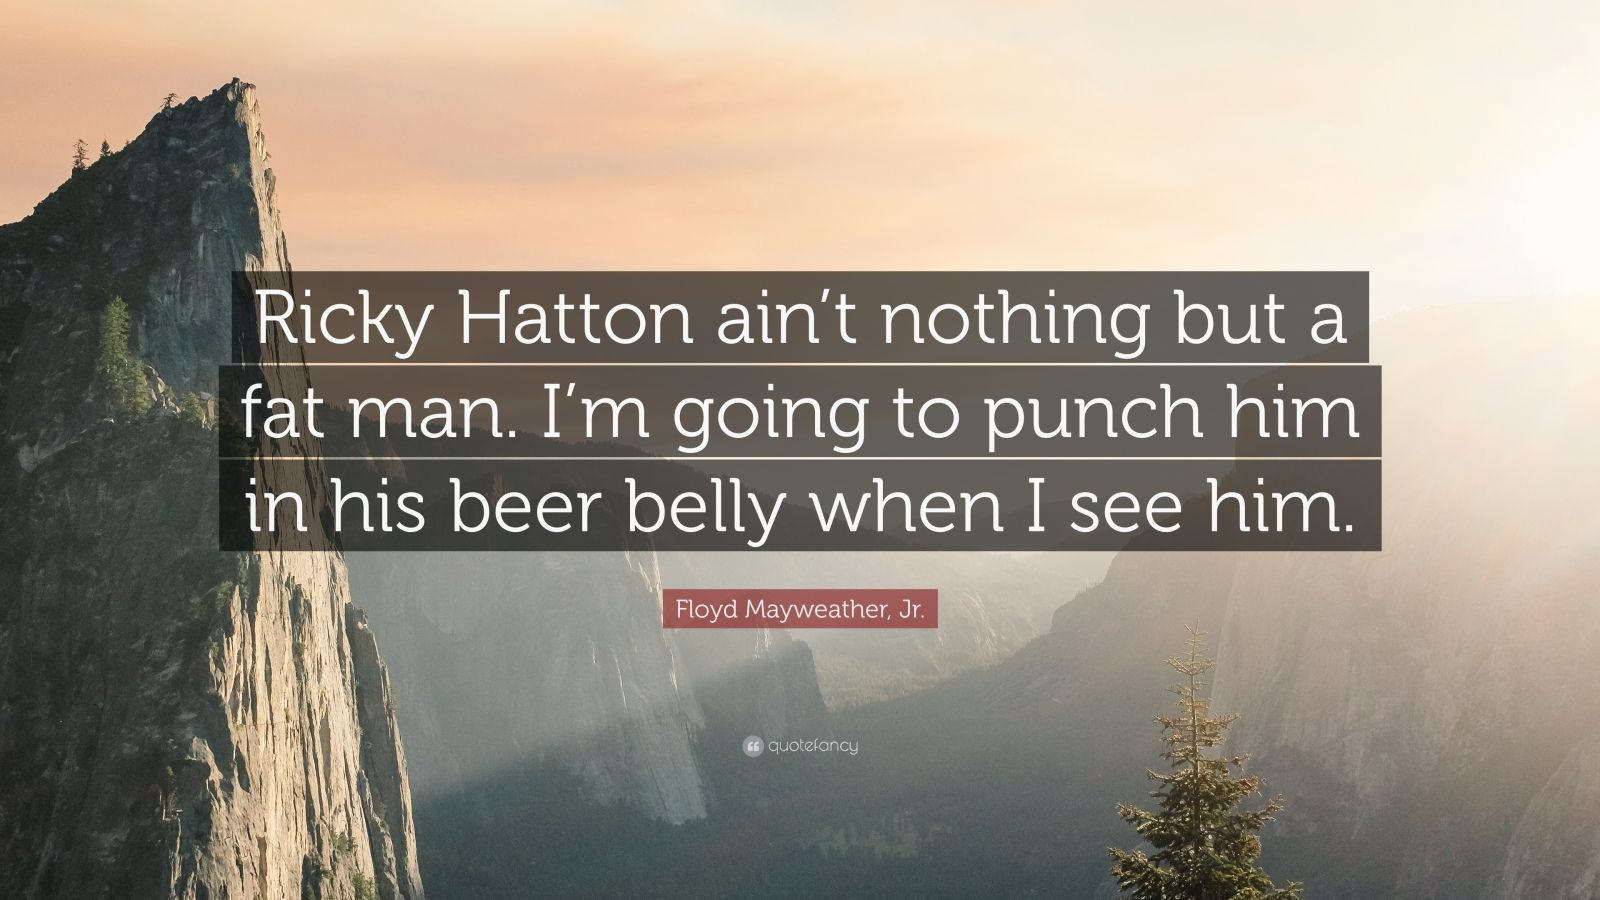 """Floyd Mayweather, Jr. Quote: """"Ricky Hatton ain't nothing but a fat man. I'm going to punch him in his beer belly when I see him."""""""